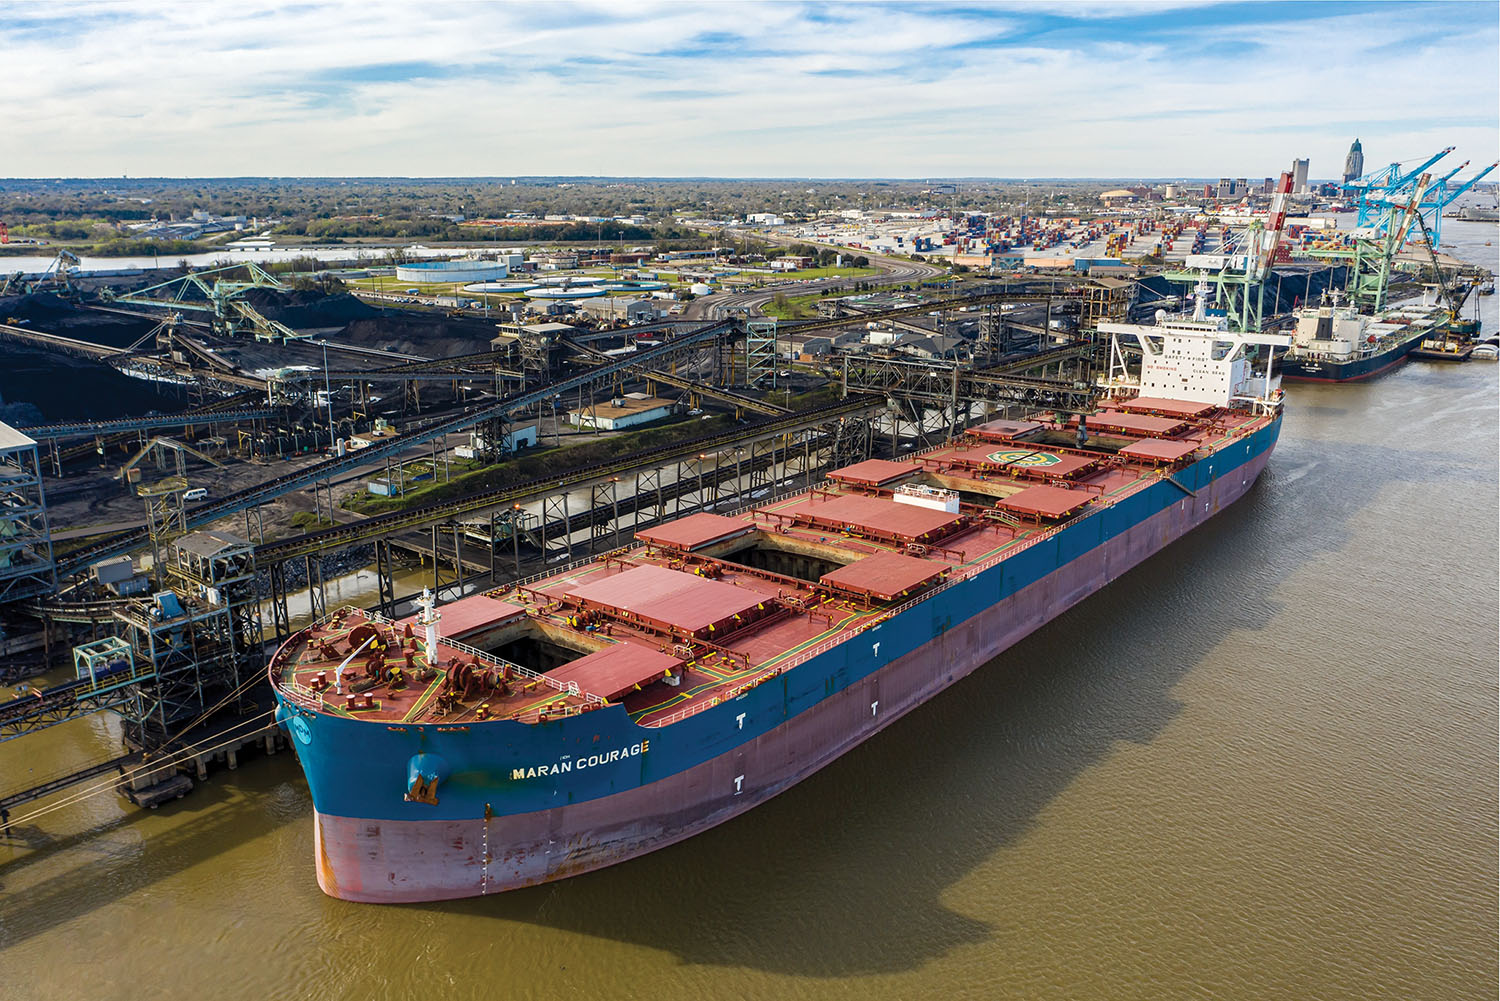 The bulk carrier Maran Courage was loaded with 133,000 short tons of coal at the McDuffie Coal Terminal.